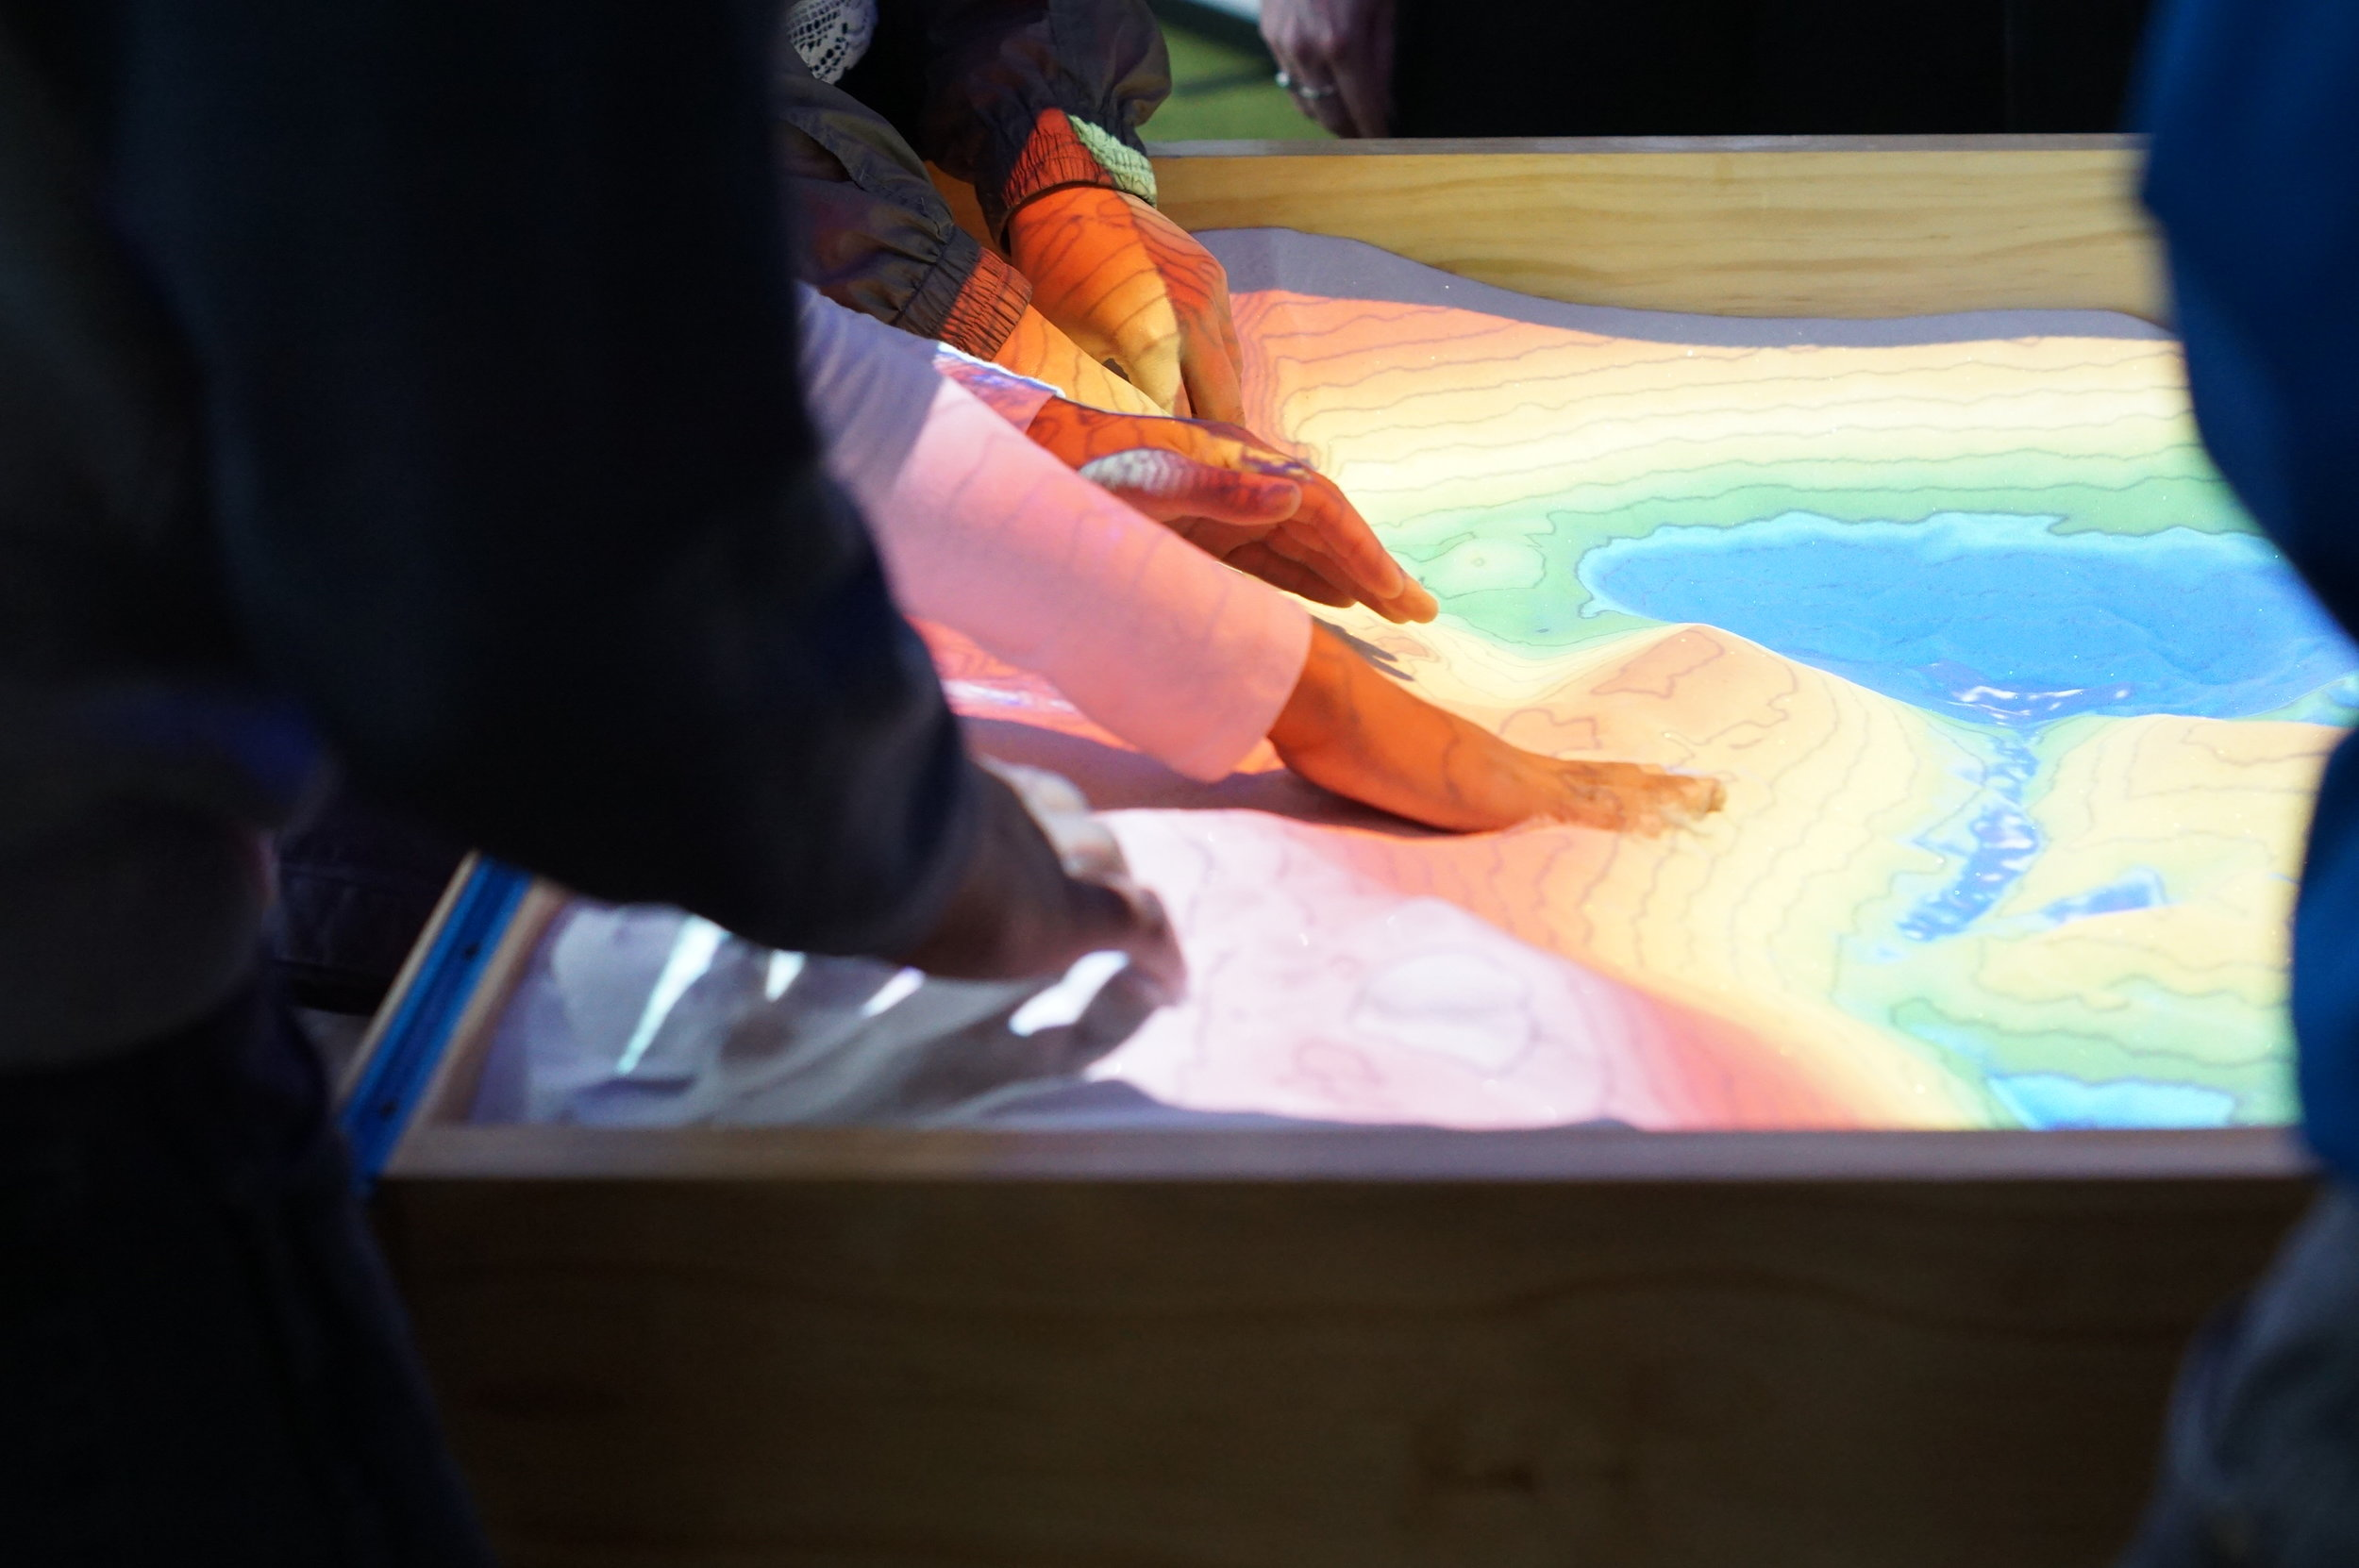 A place for all hands... The AR table invites cooperative interaction by its very nature.